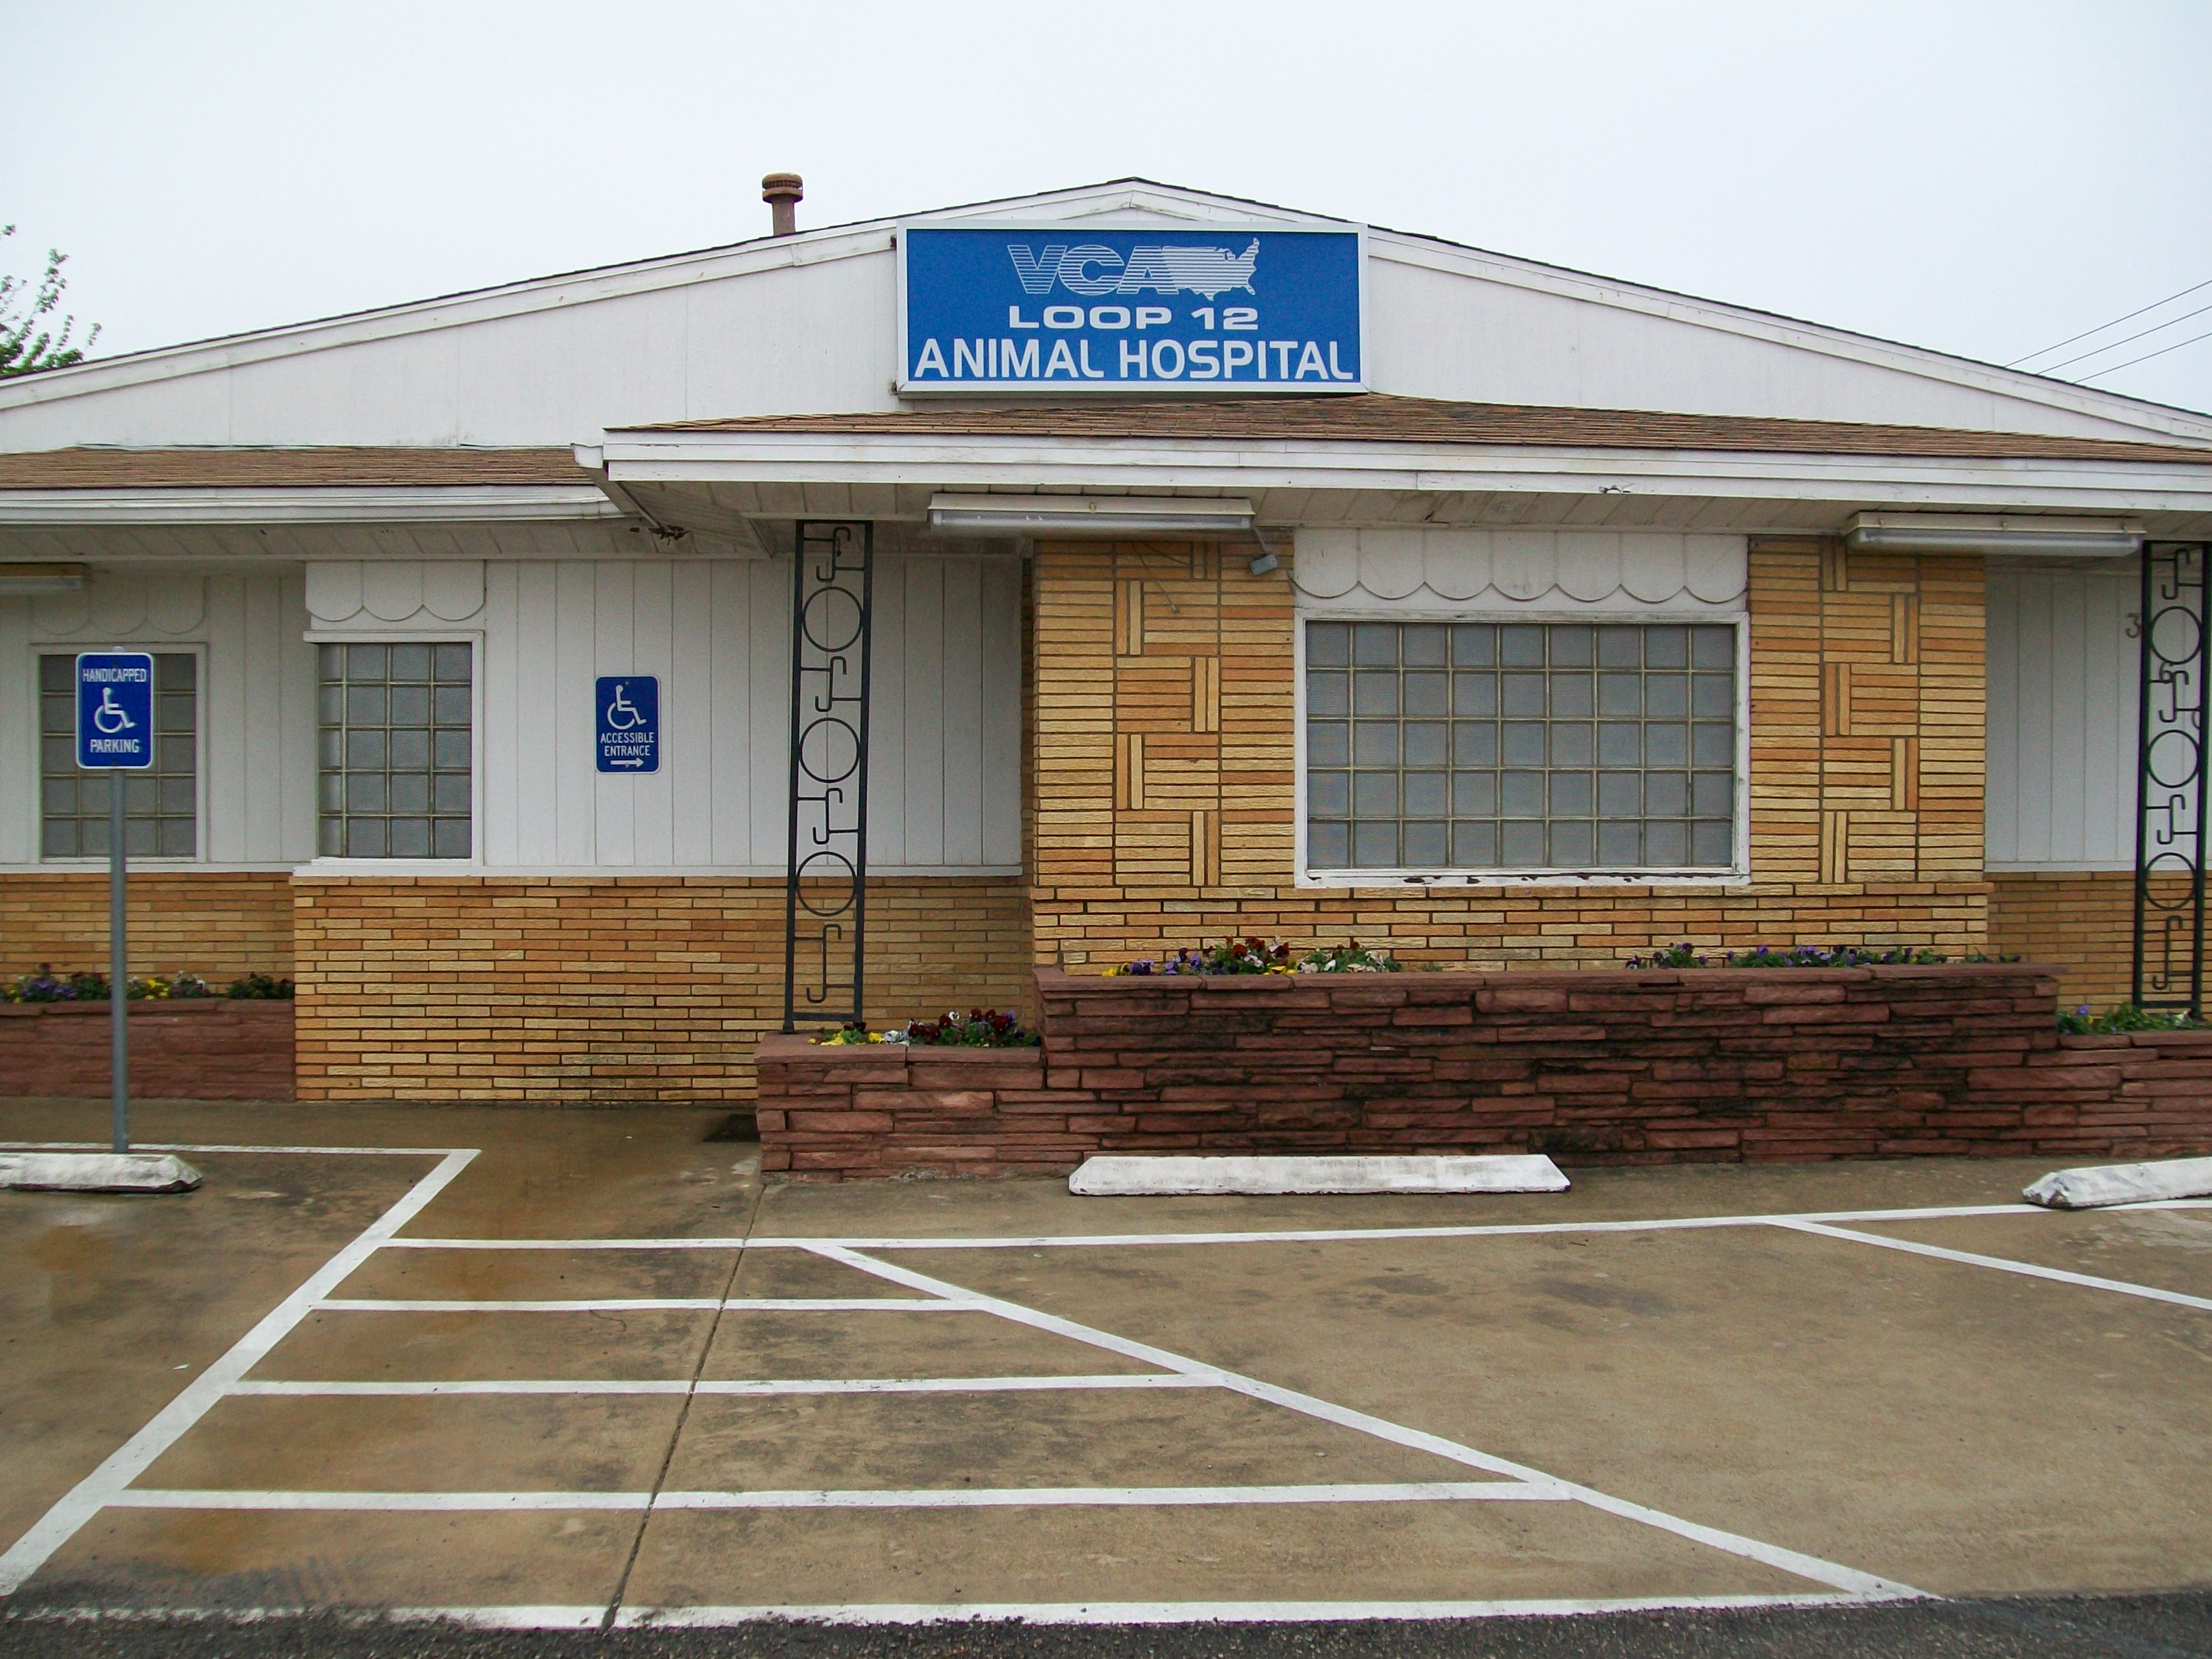 VCA Loop 12 Animal Hospital - Dallas, TX 75228 - (214)758-7249 | ShowMeLocal.com